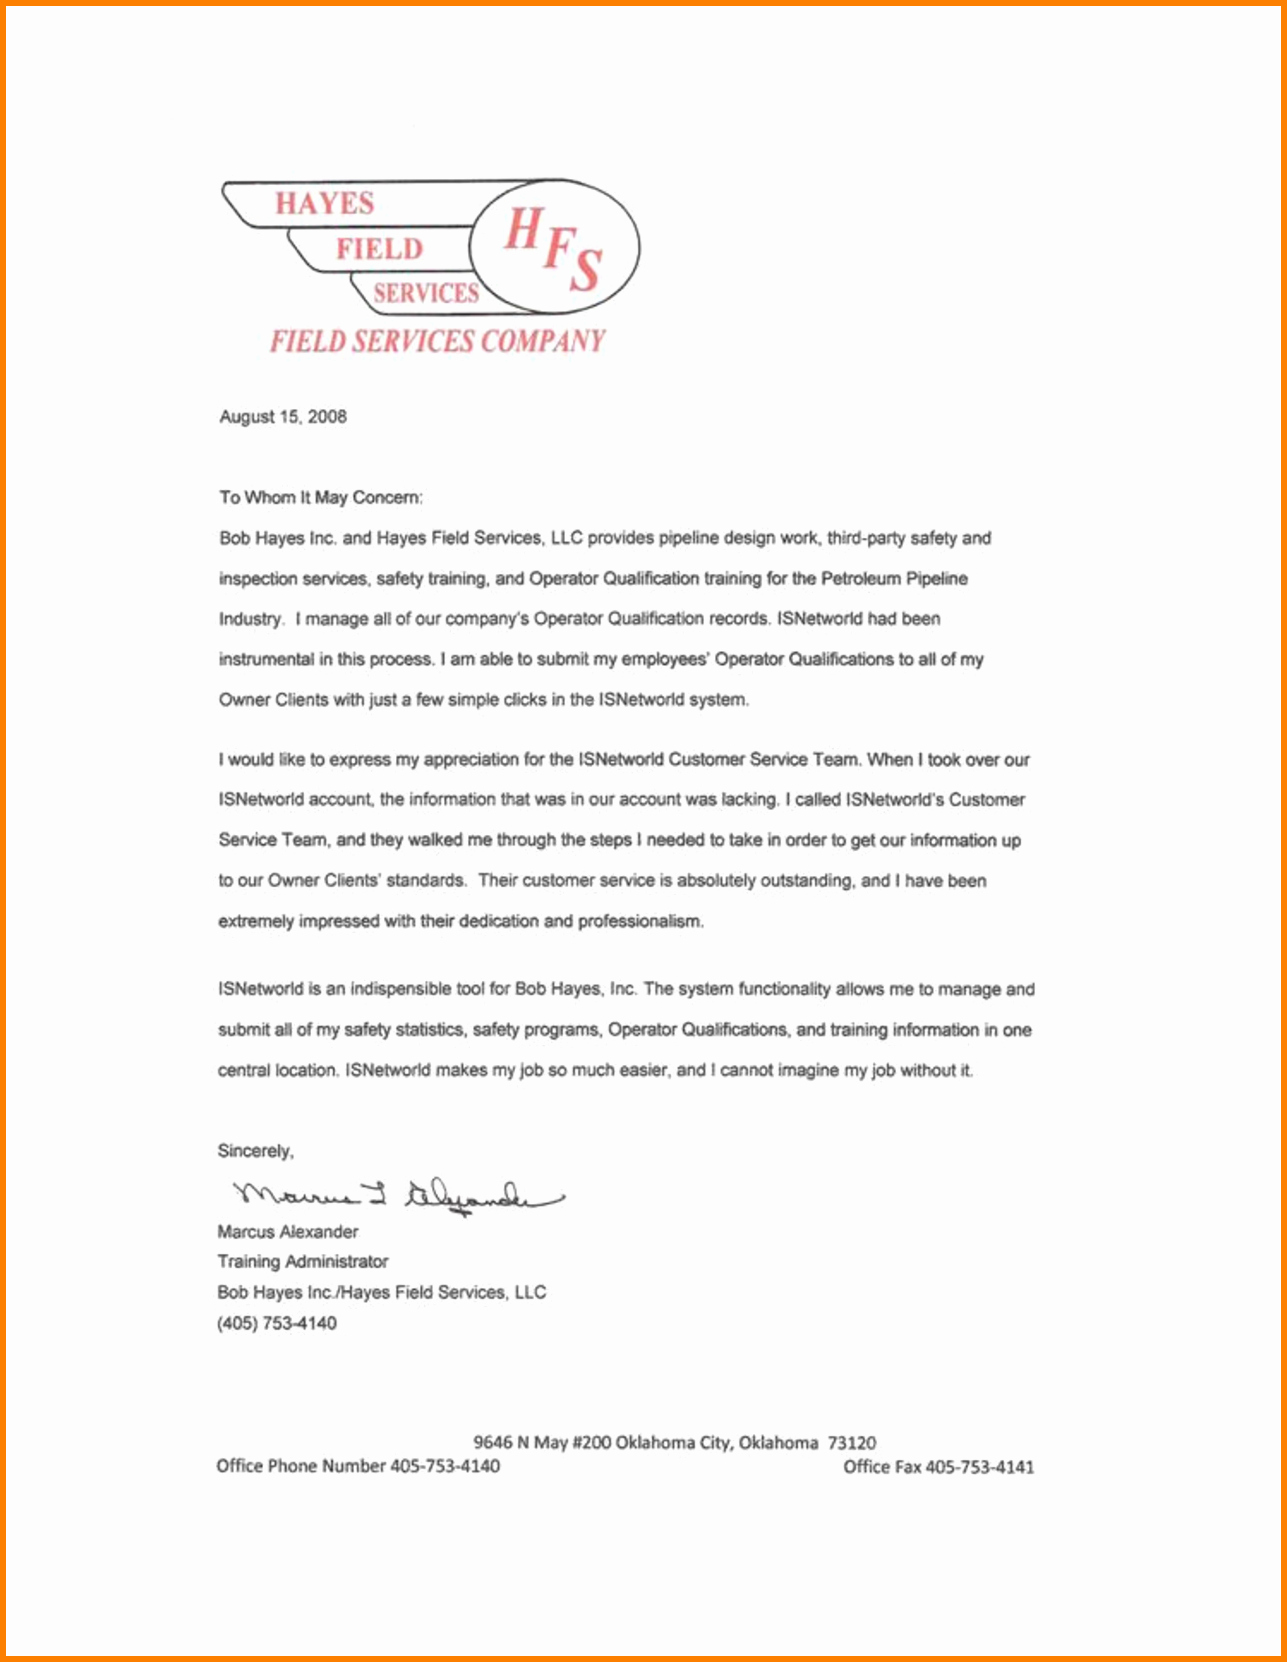 Business Letter format Template Word New How to Make A Business Letter In Word 2010 Graphics and